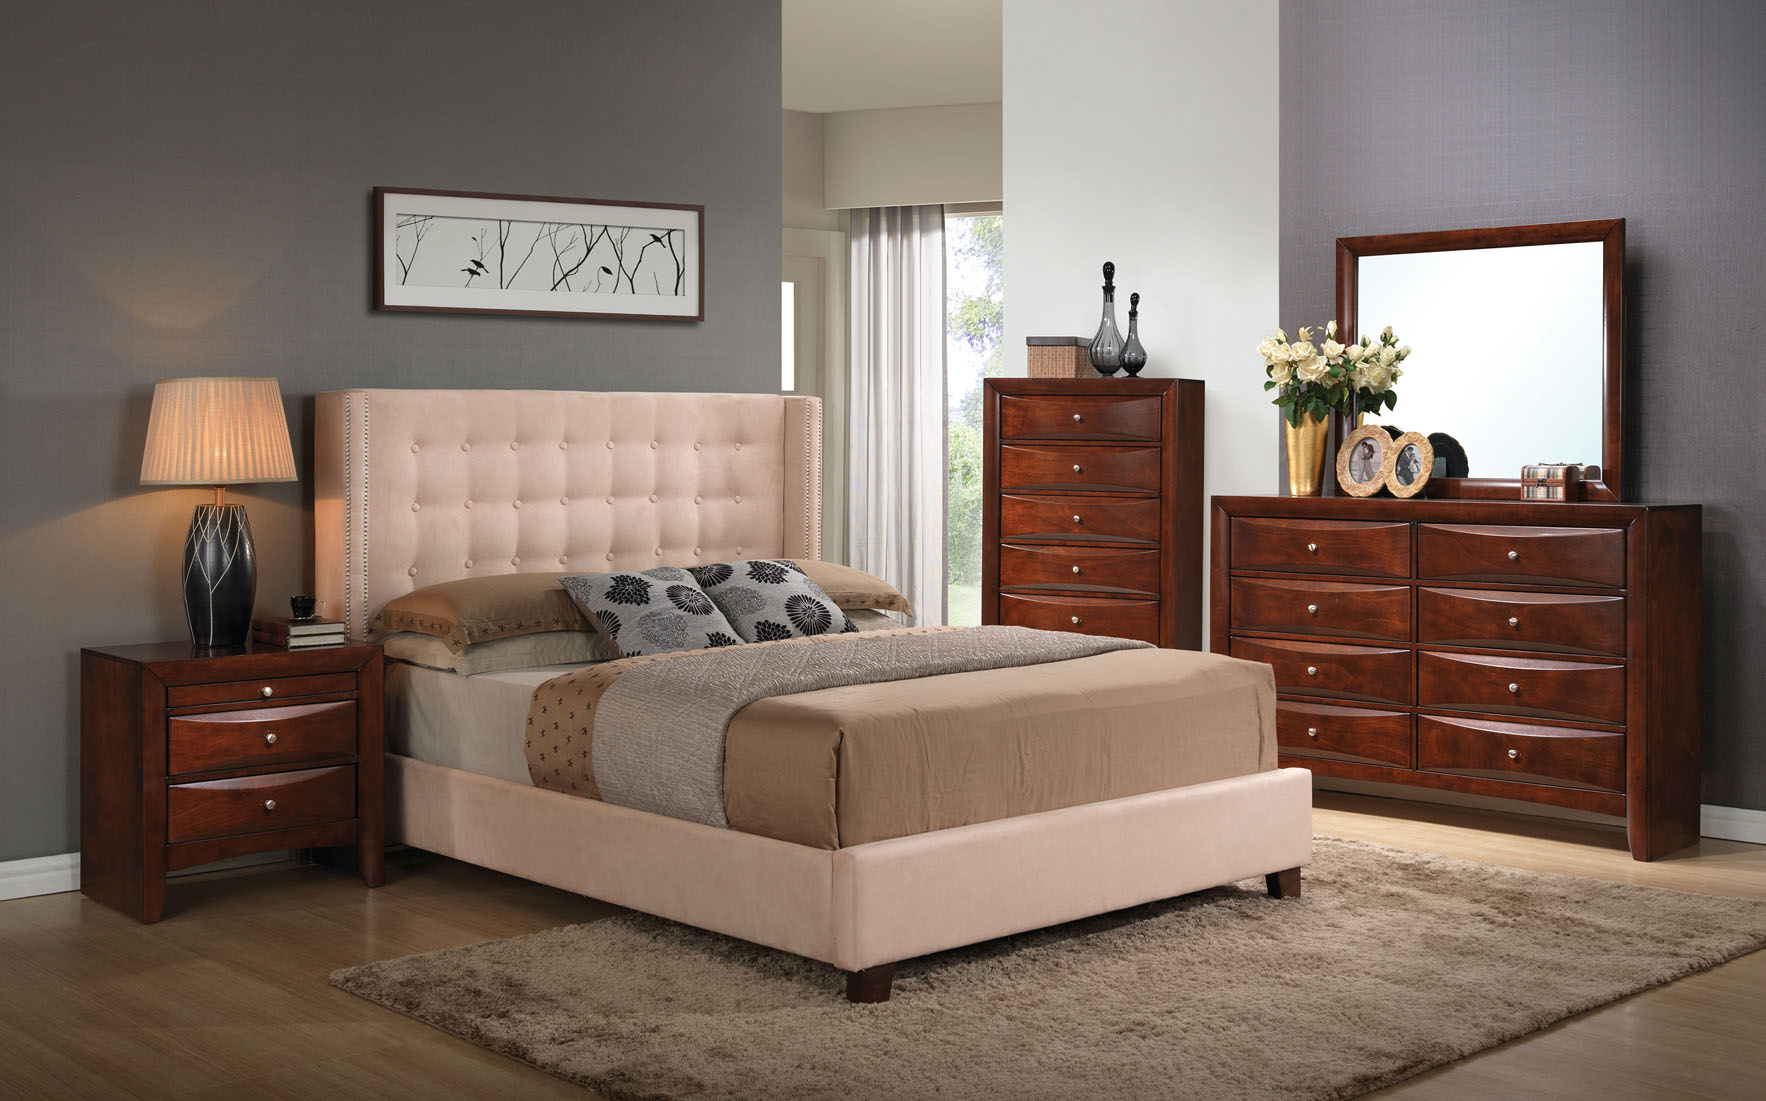 Beige Micro Fiber Upholstered Queen Bed Frame